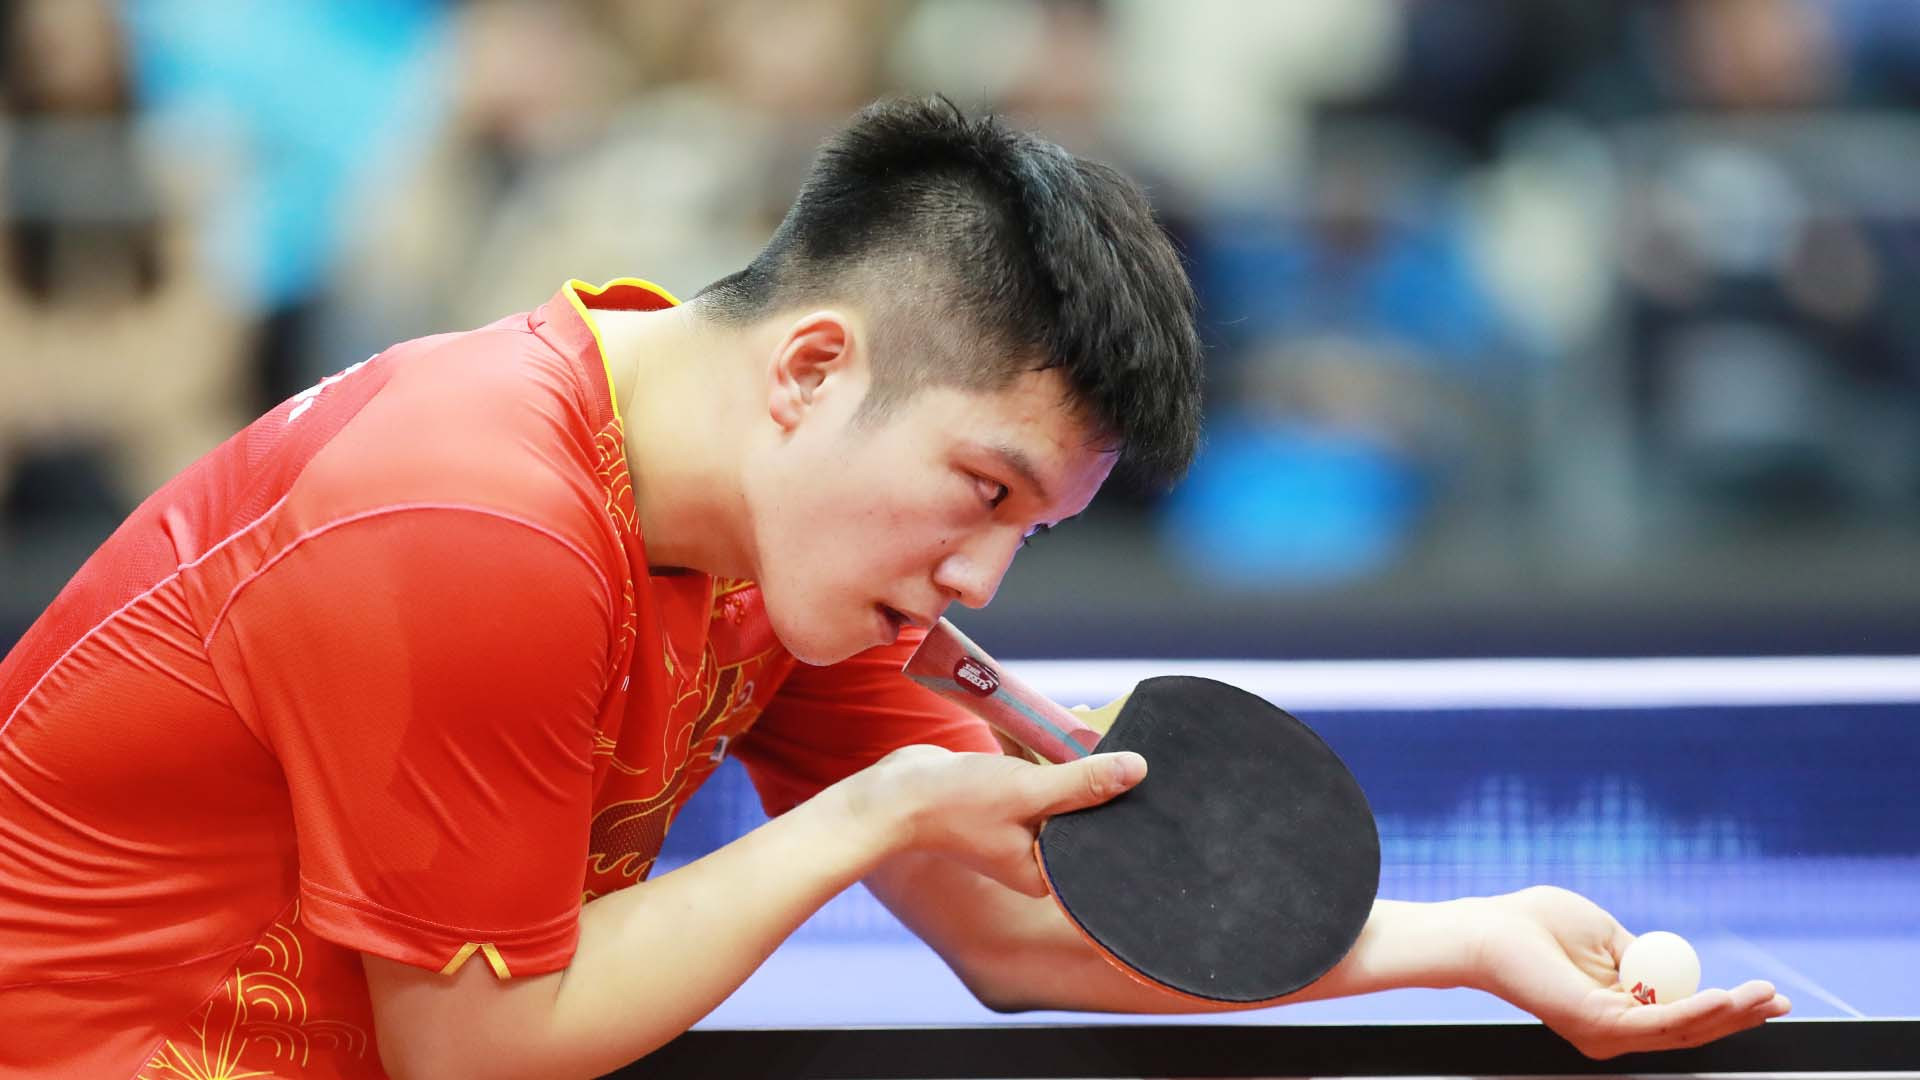 Stockholm ready to host last stop on ITTF World Tour calendar with Grand Finals places up for grabs